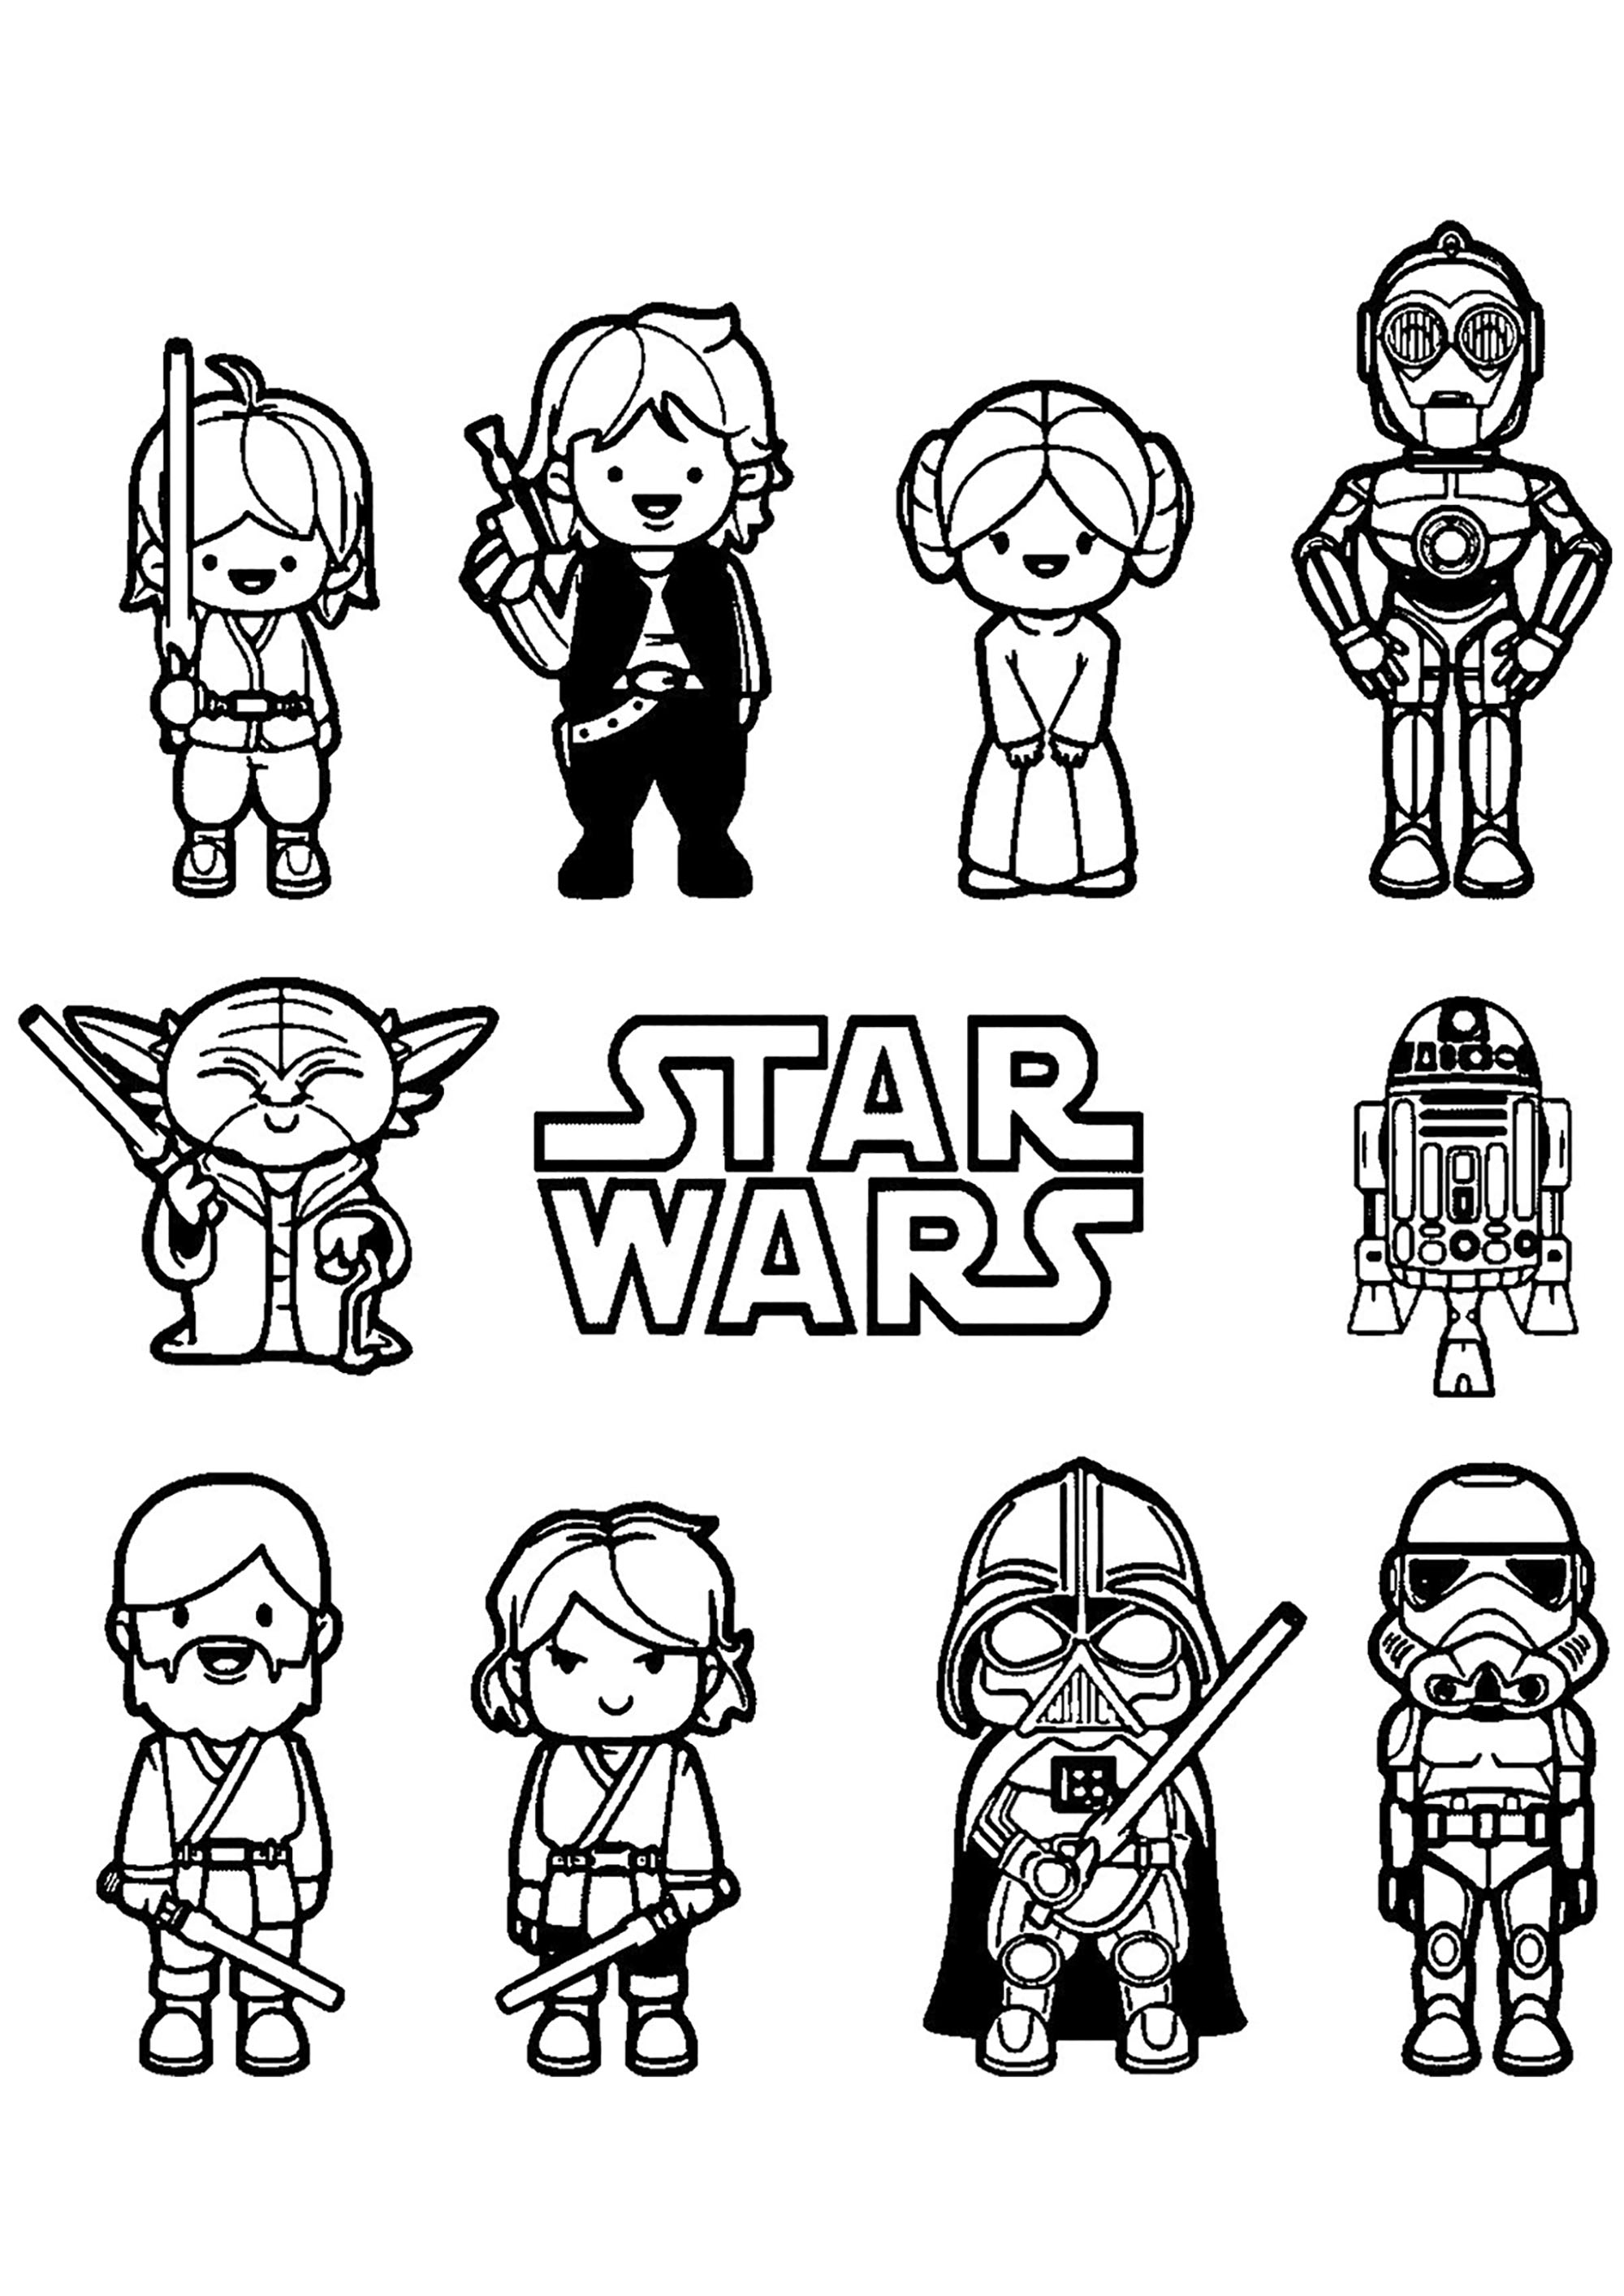 star wars coloring pictures free star wars printable coloring pages bb 8 c2 b5 pictures star wars coloring